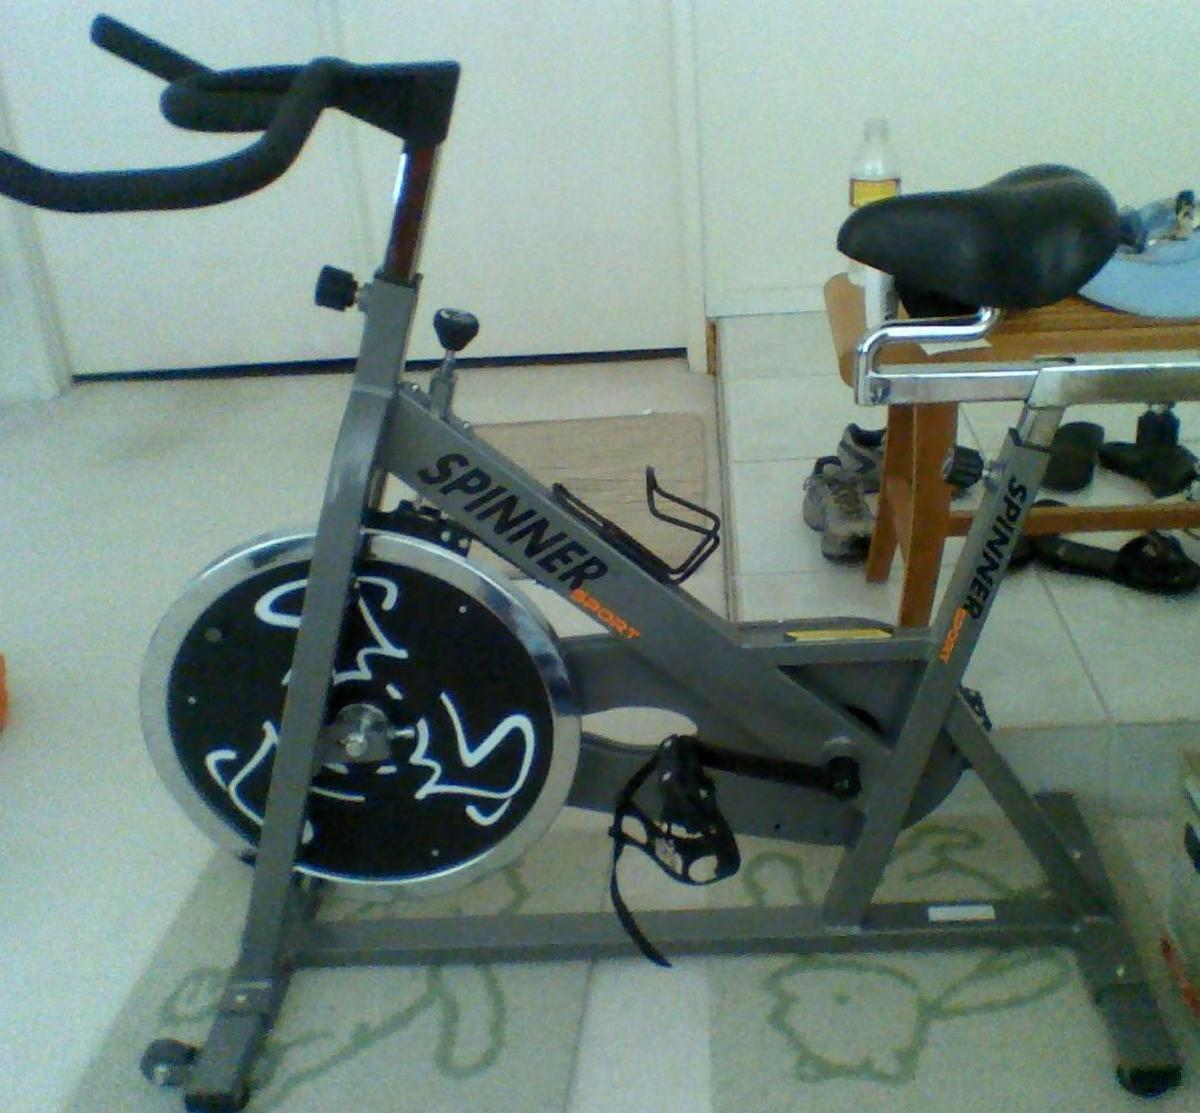 Spinner Sport Excercise Bike Review